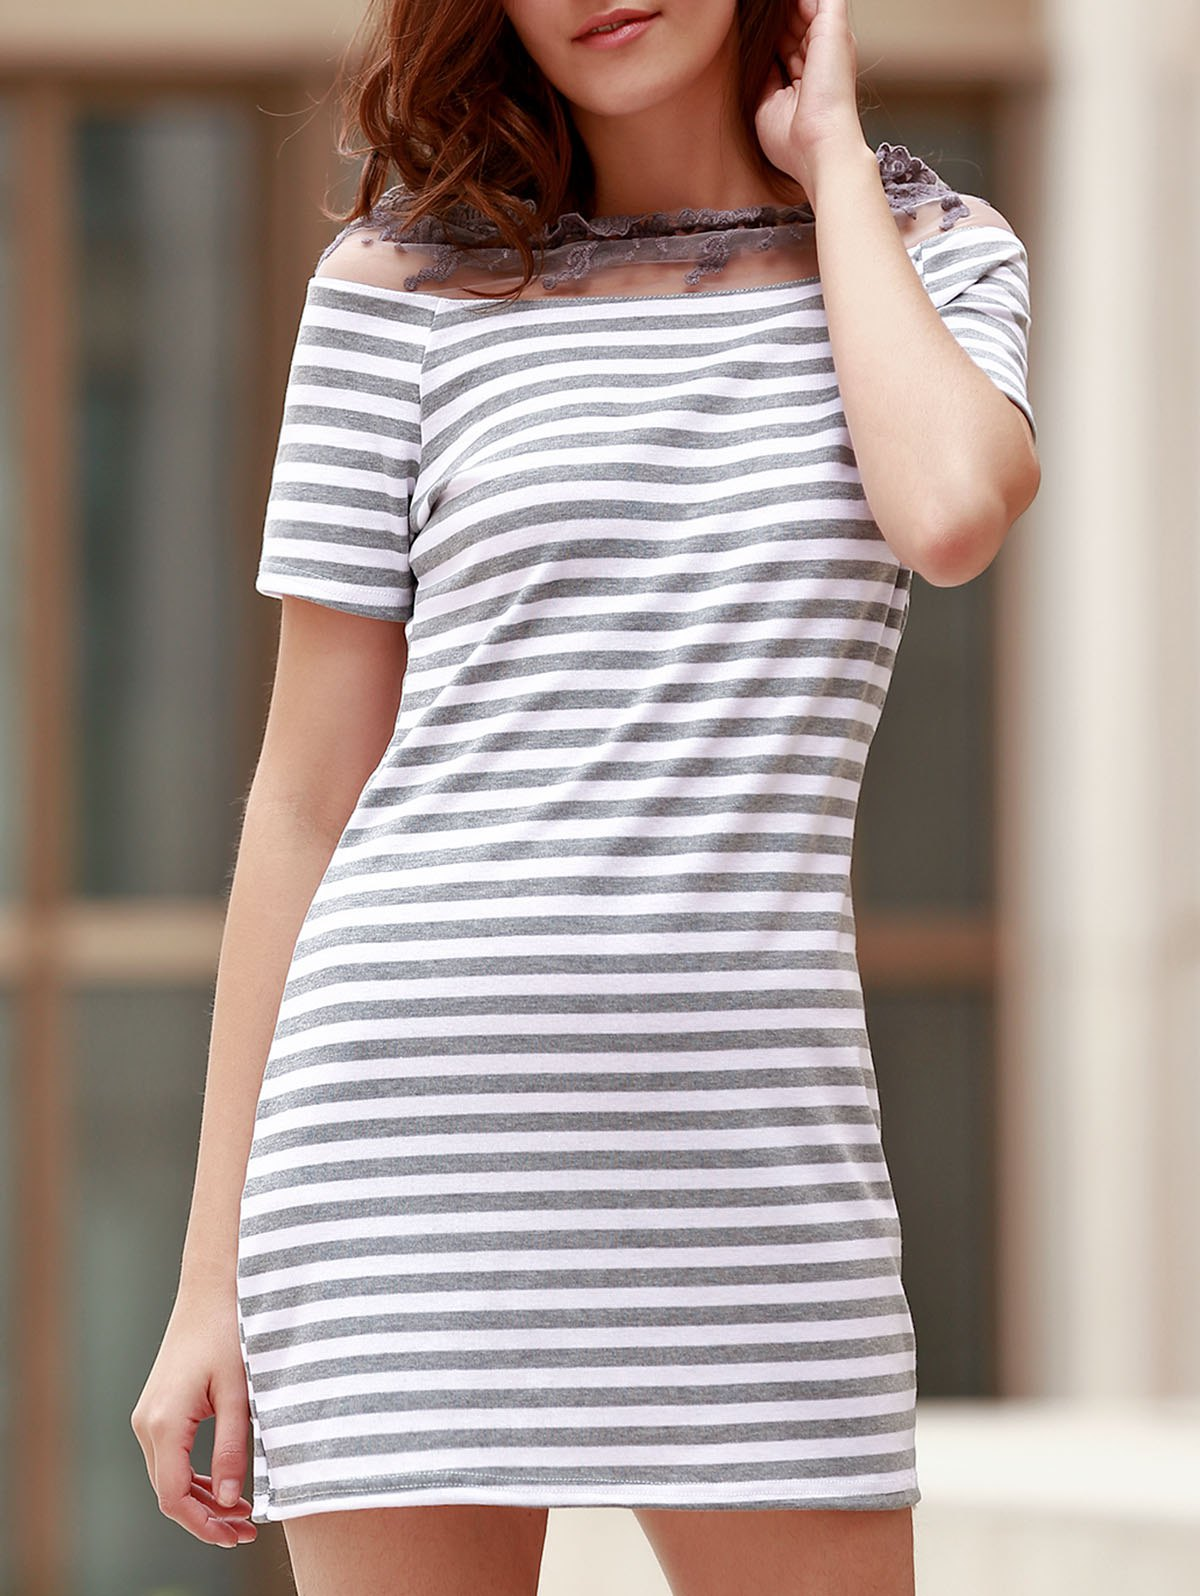 Stylish Short Sleeve Striped Lace Floral Spliced See-Through Women's Dress - GRAY S